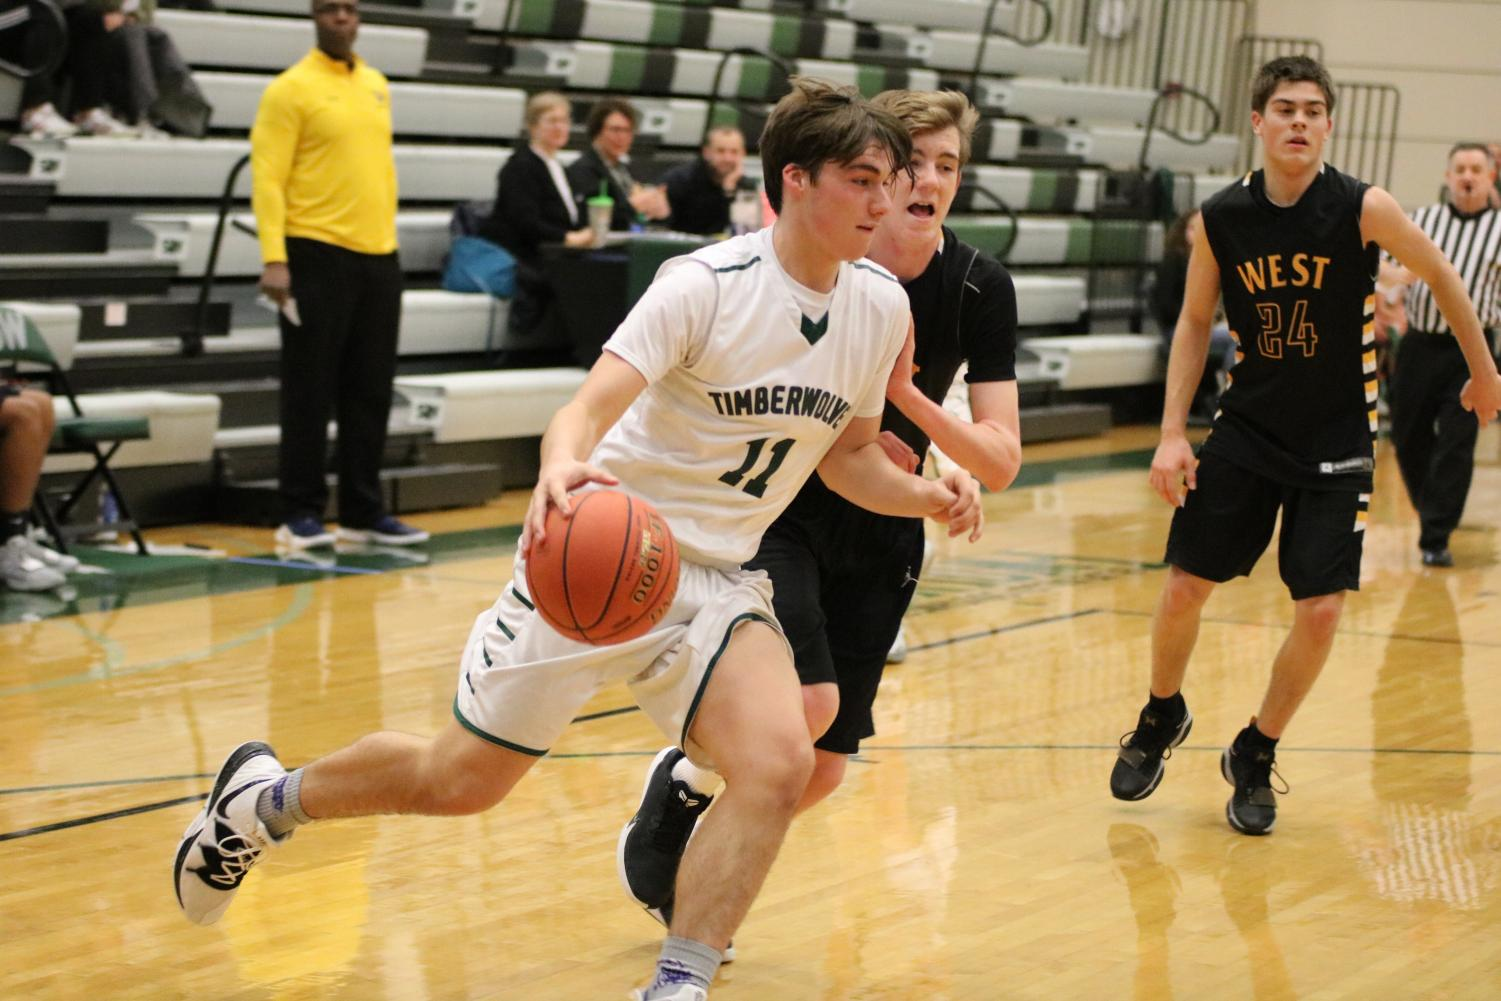 Sophomore Tyler Sardelli battles for the ball at the boys basketball game.